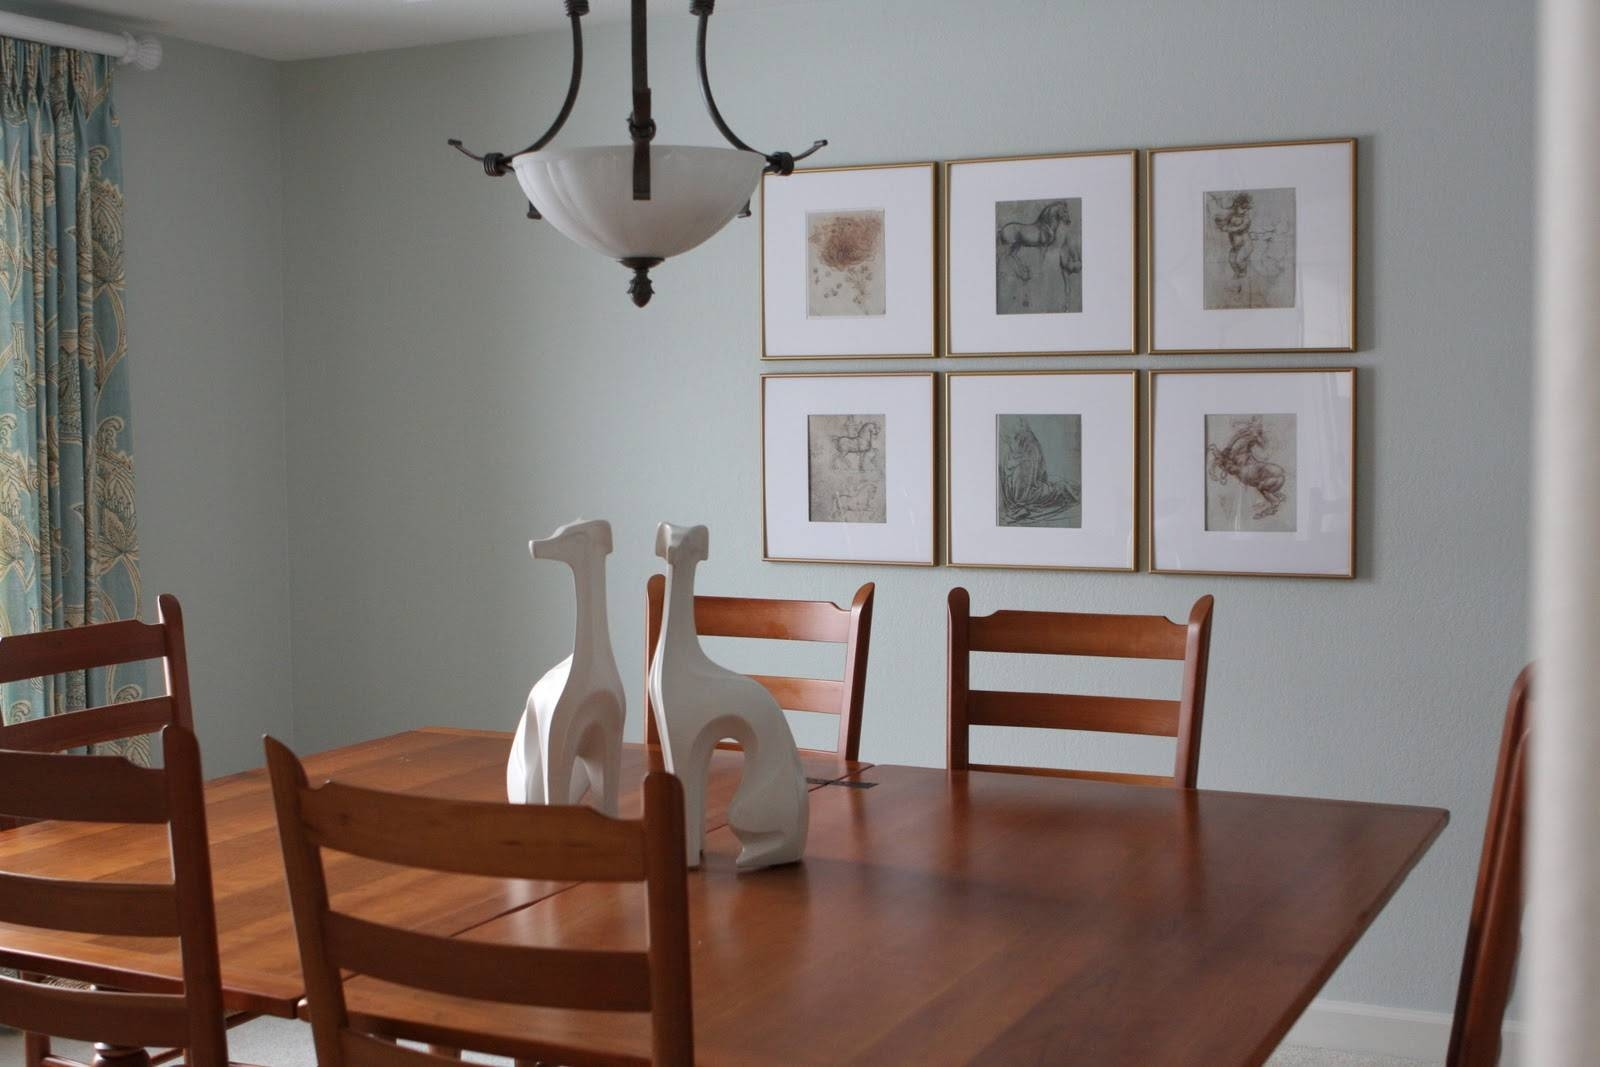 Dining Room | Tile Arrangement Framed Picture Dining Wall Decor Regarding Most Current Wall Art For Dining Room (View 14 of 20)